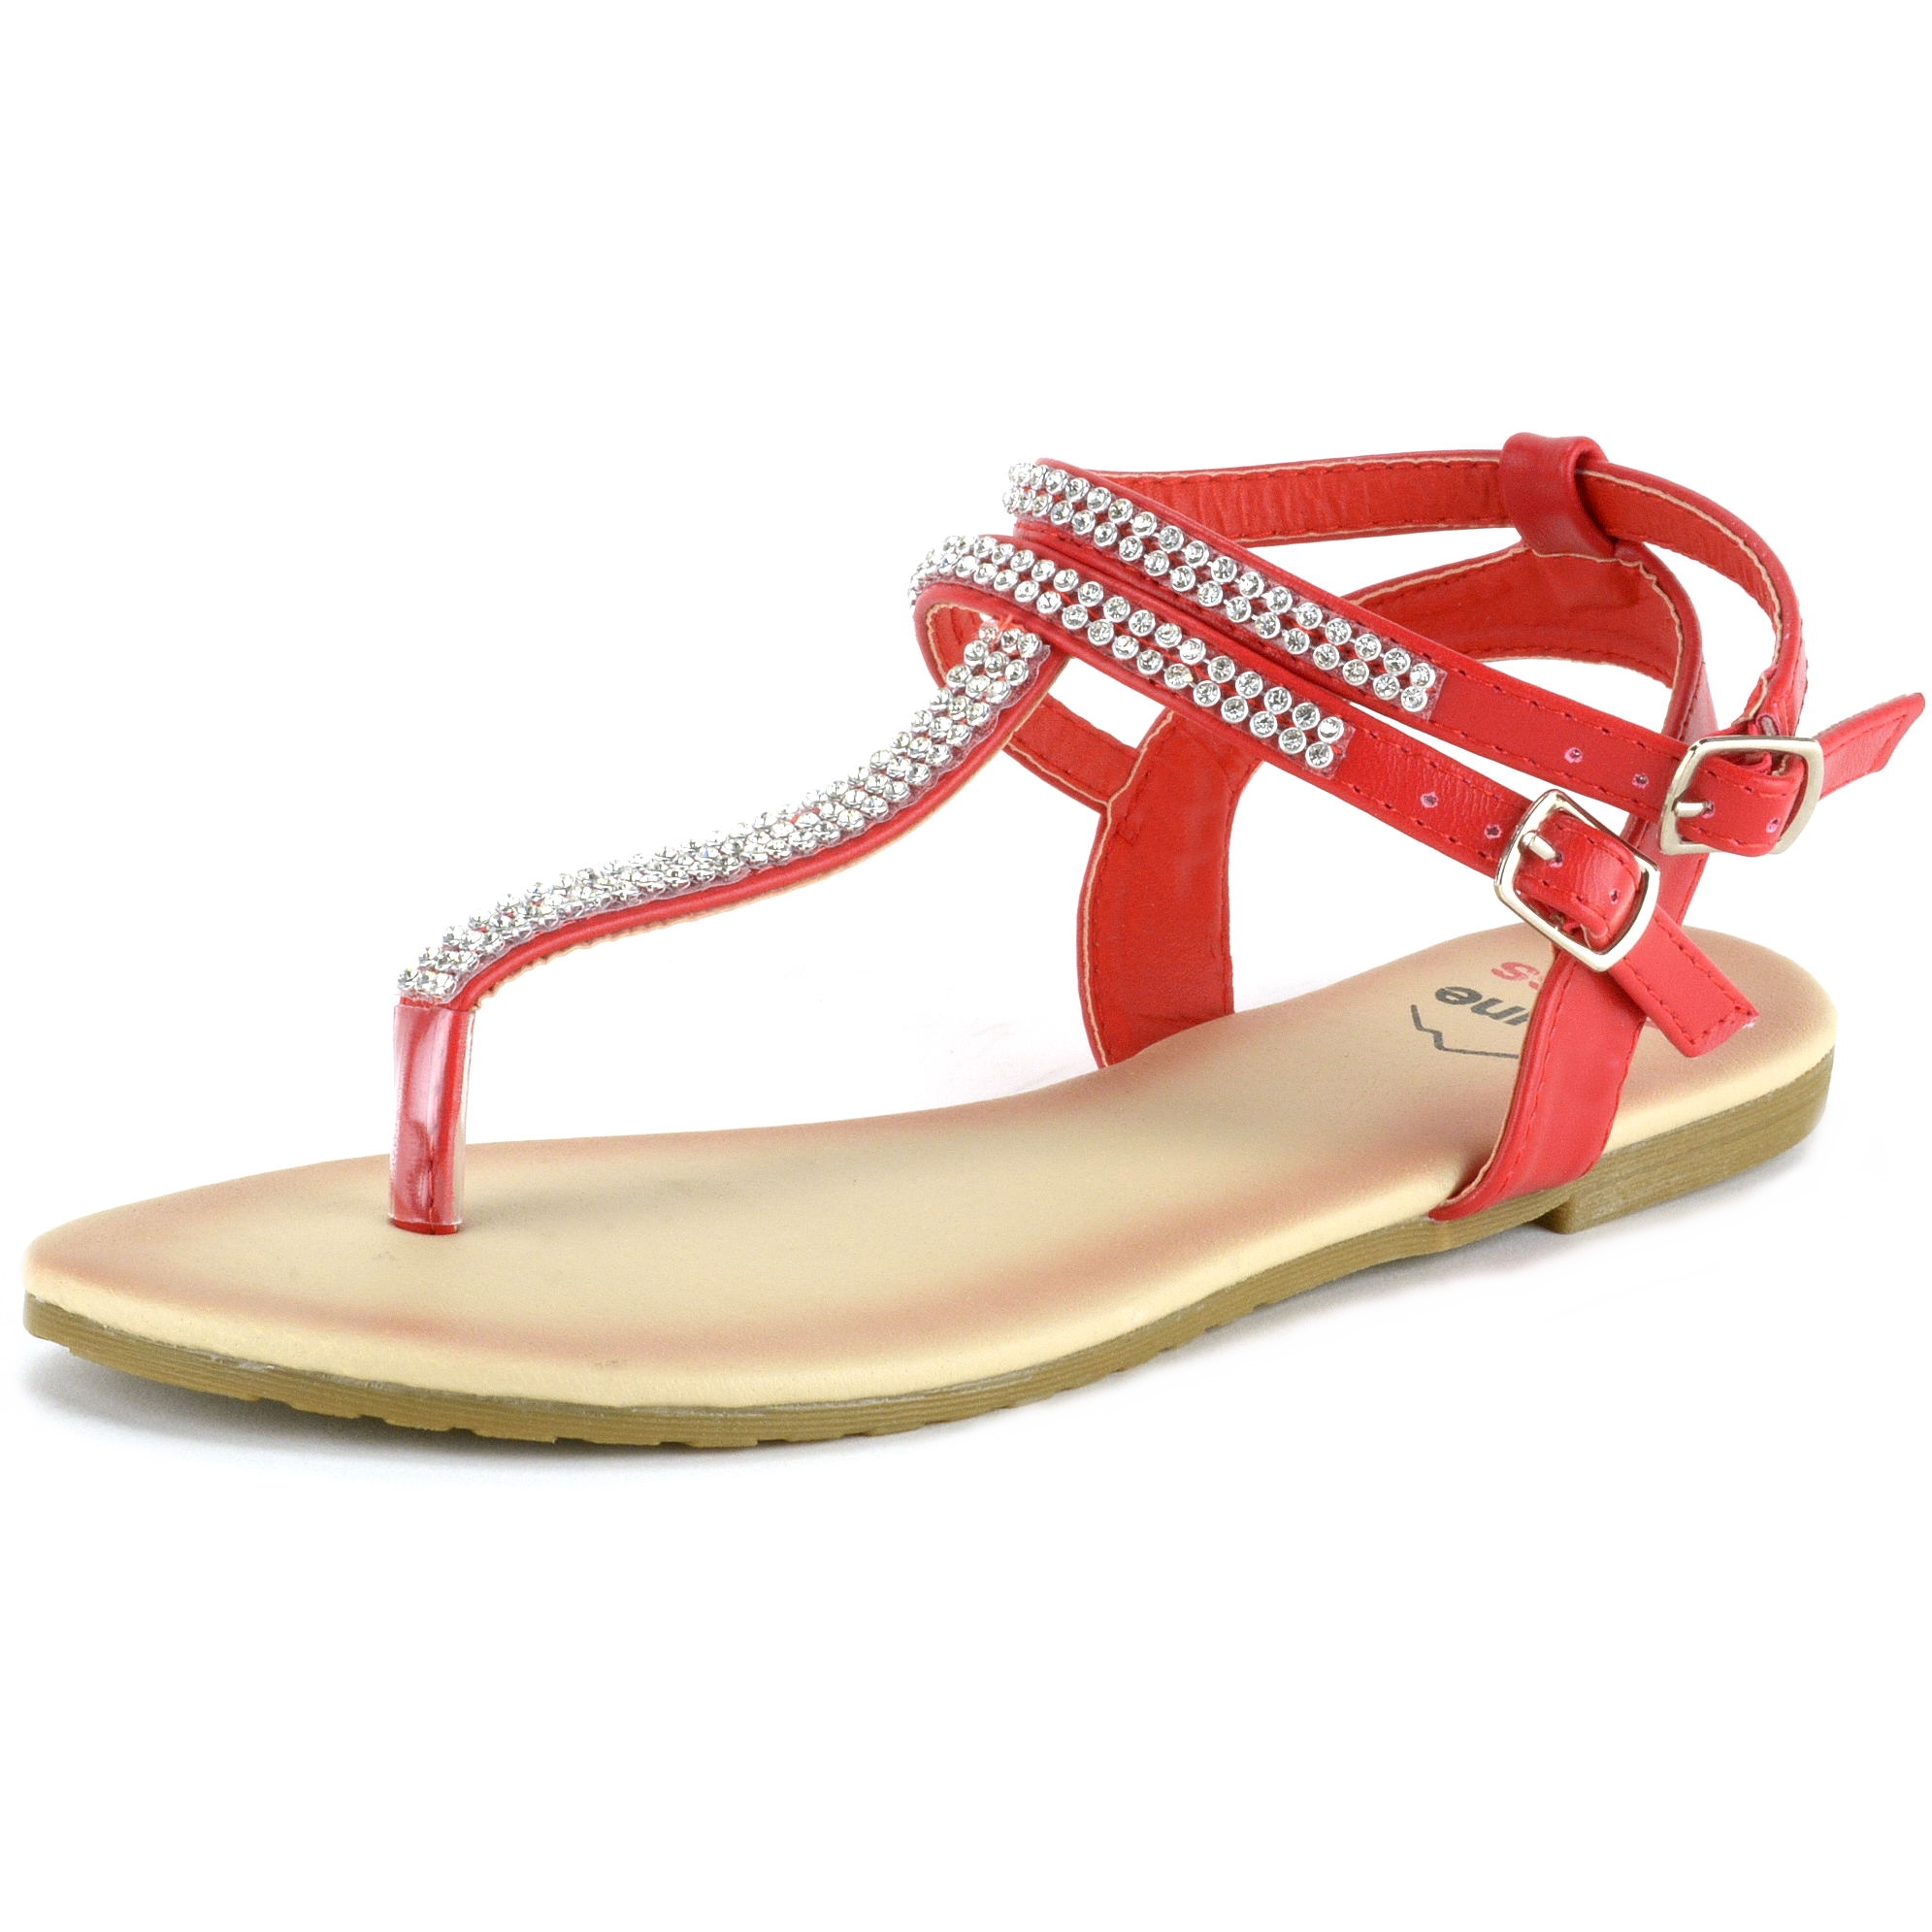 473309330c445 Details about Alpine Swiss Womens Rhinestone T-Strap Sandals Ankle Strap  Flat Summer Shoes